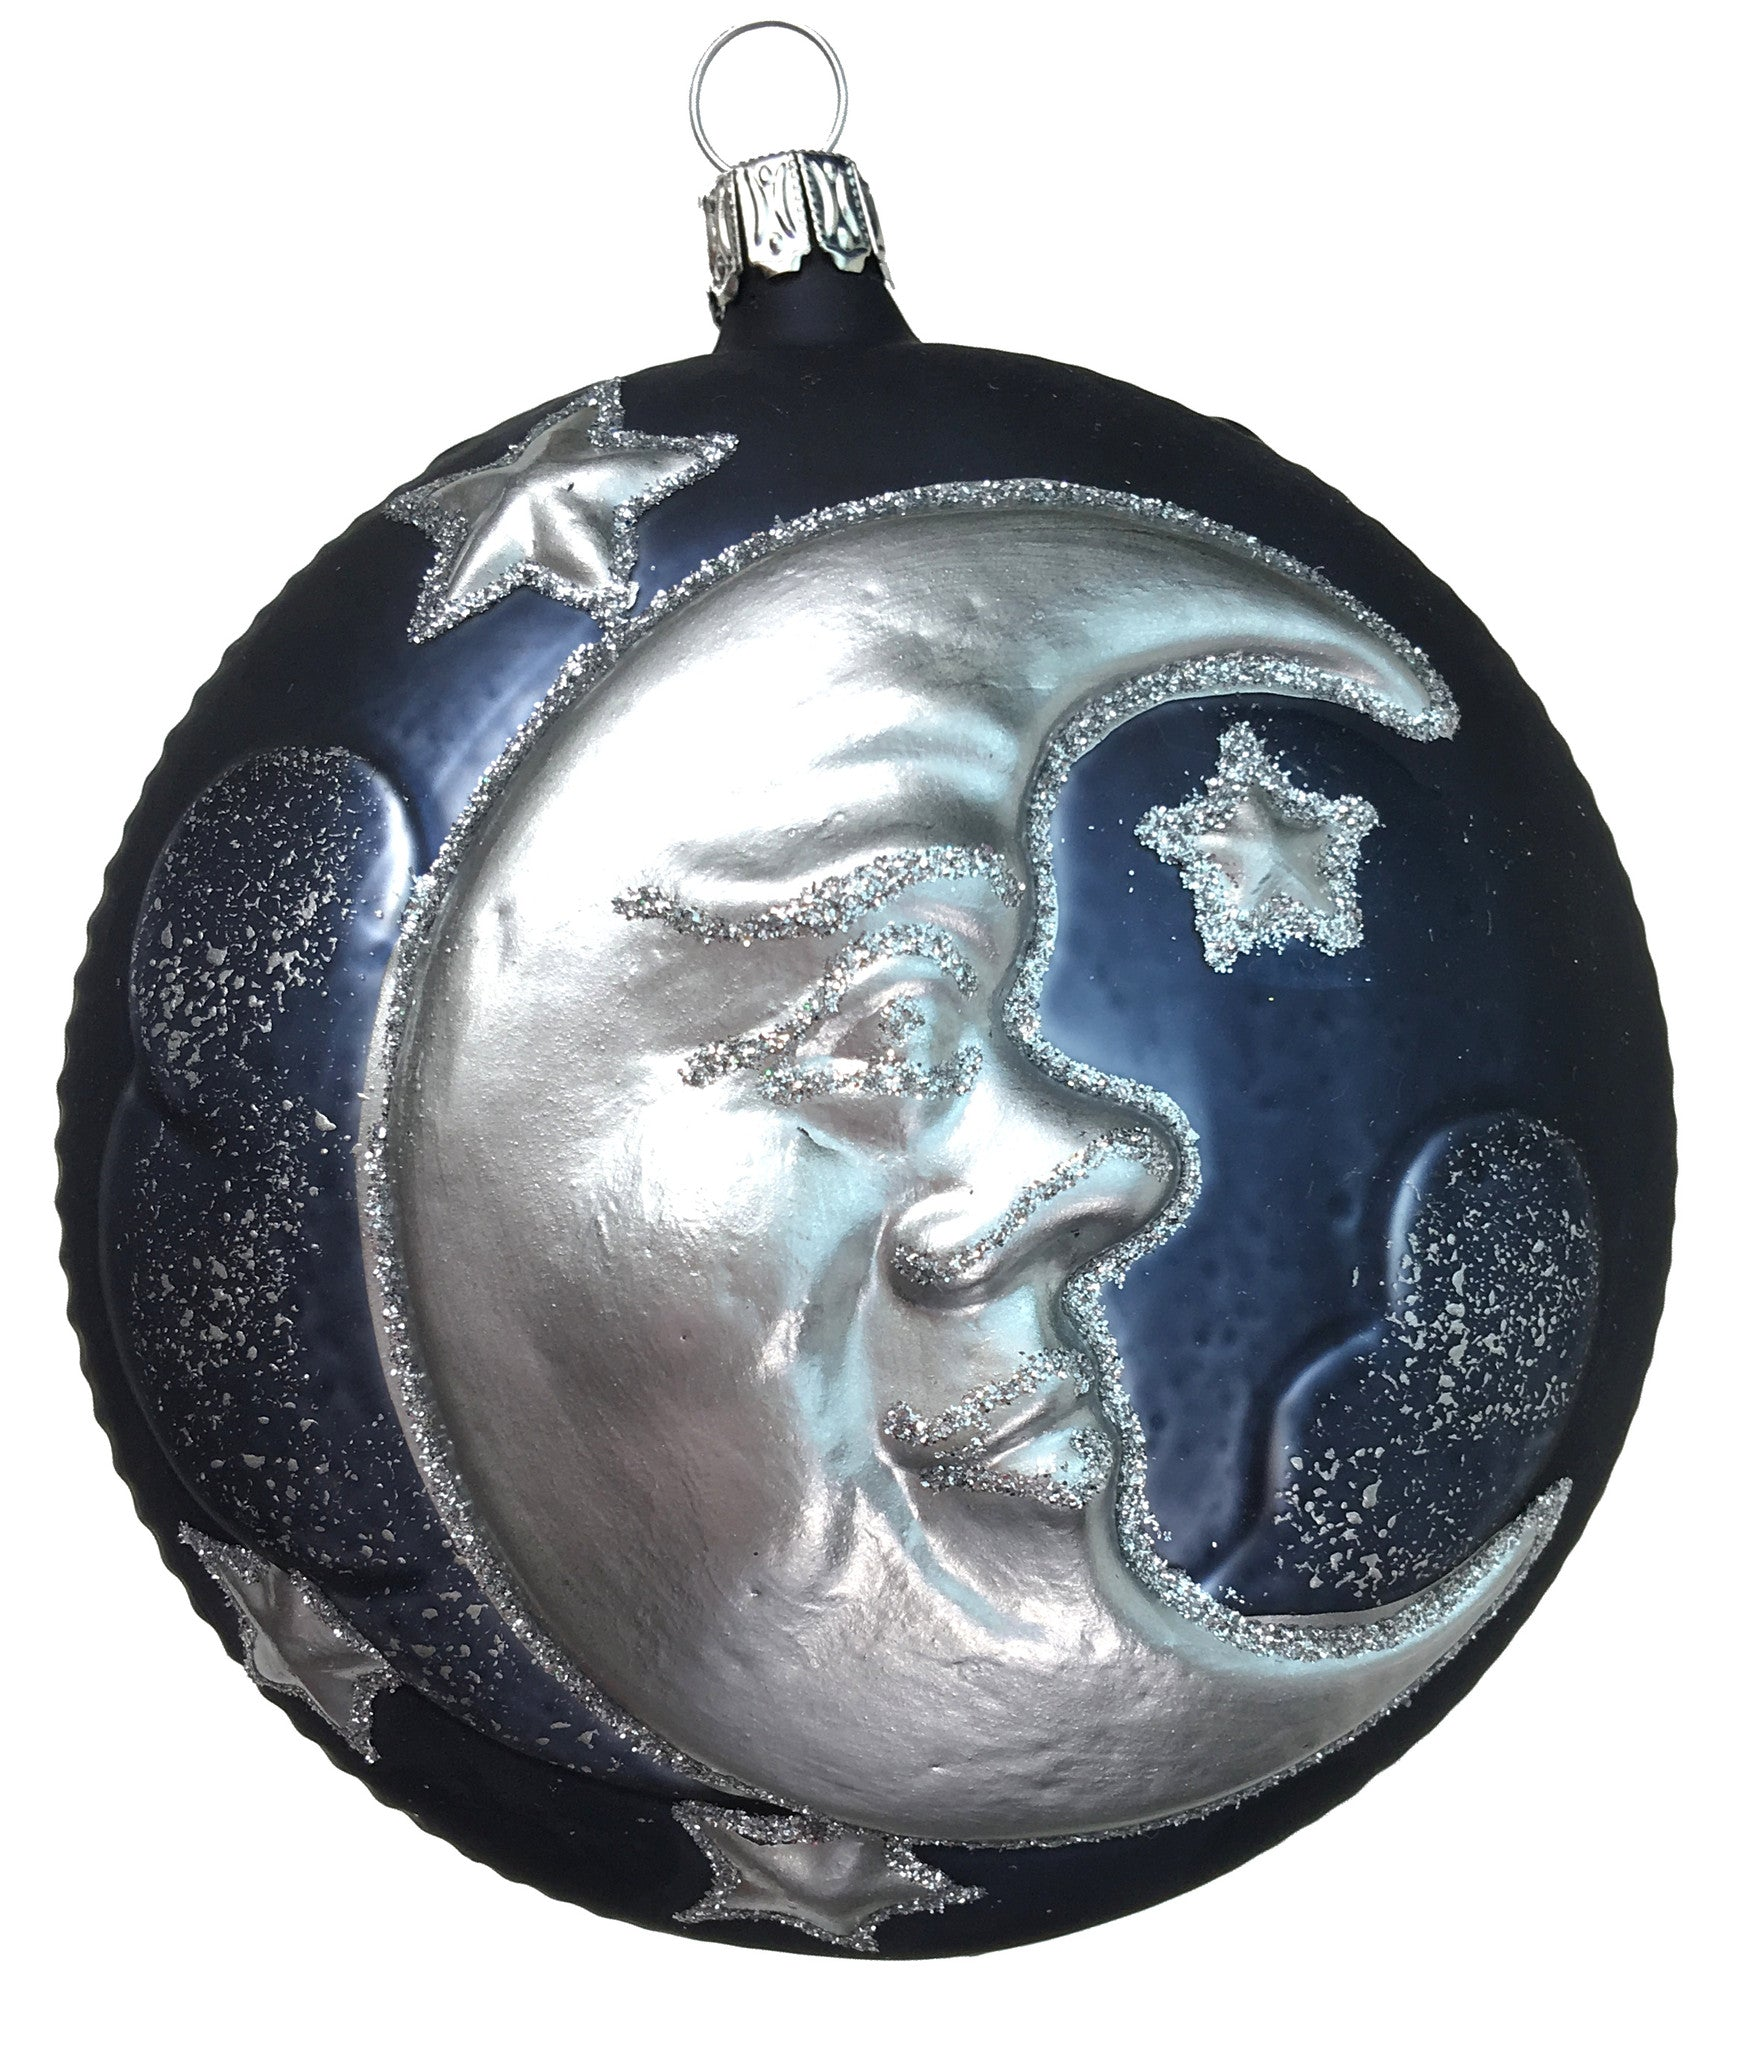 Man in the Moon Glass Ornament, Blue and Silver